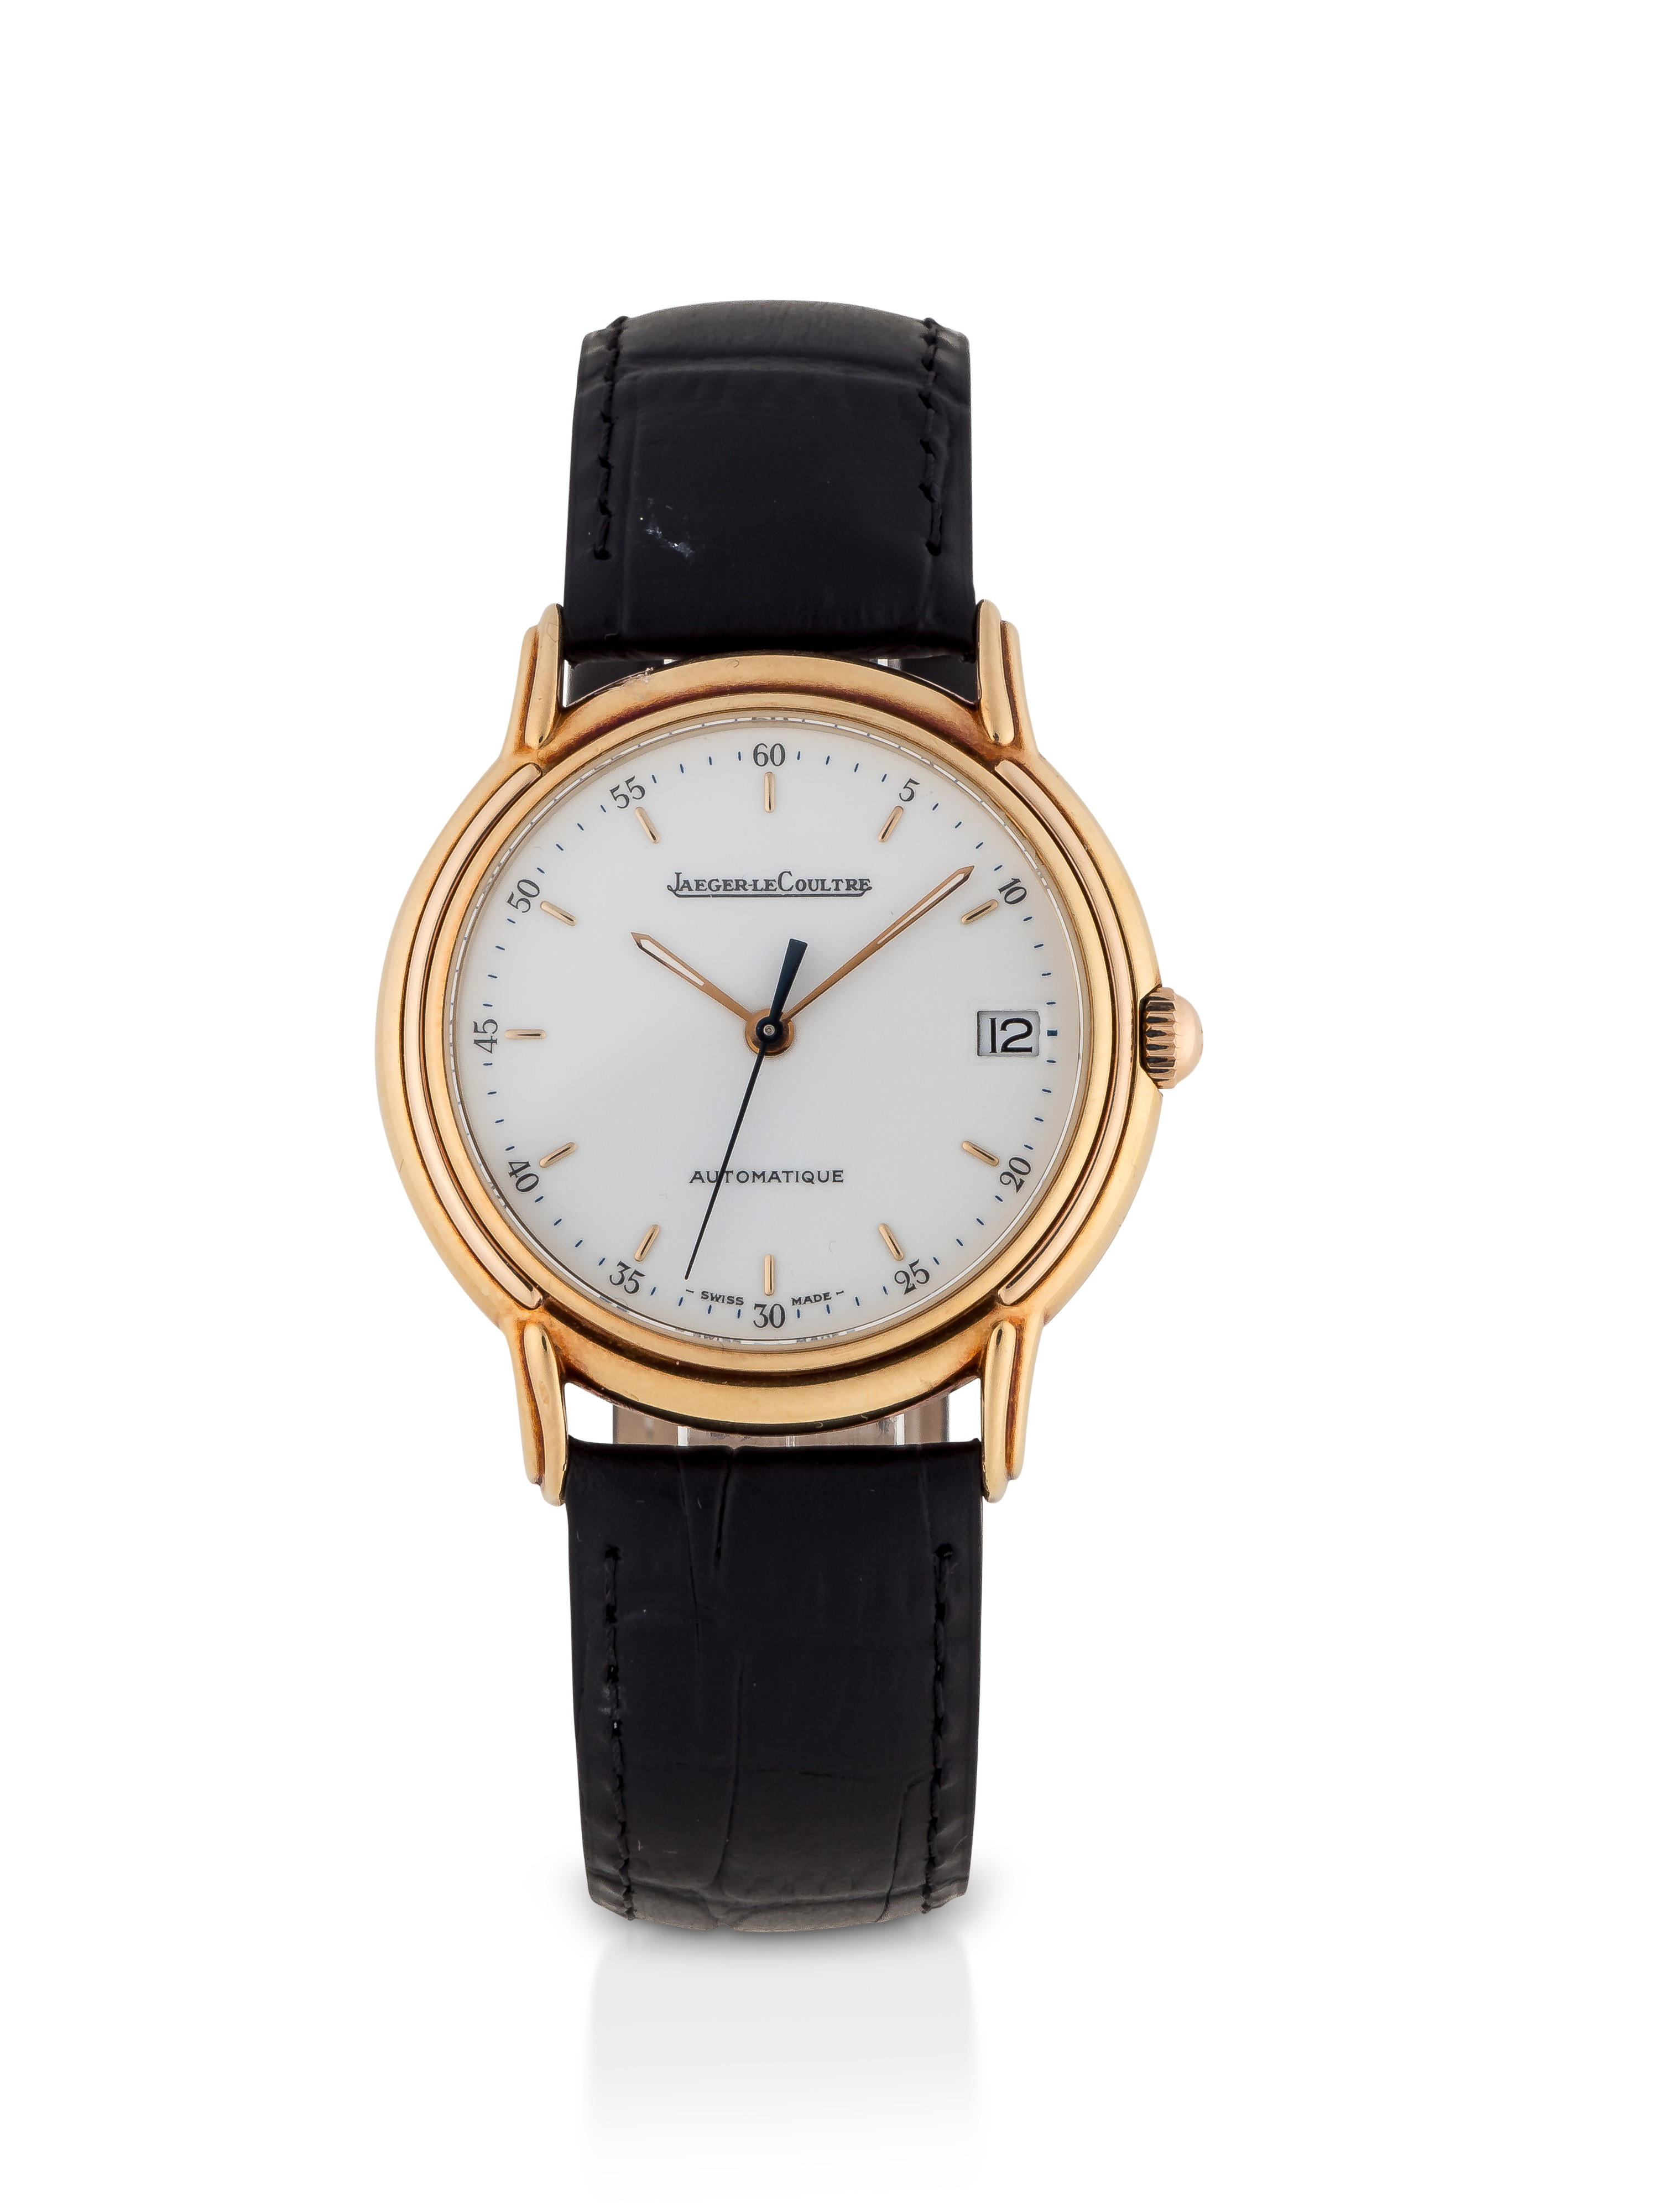 JAEGER-LECOULTRE | ODYSSEUS, REF 165.7.89 S YELLOW GOLD WRISTWATCH WITH DATE CIRCA 1991